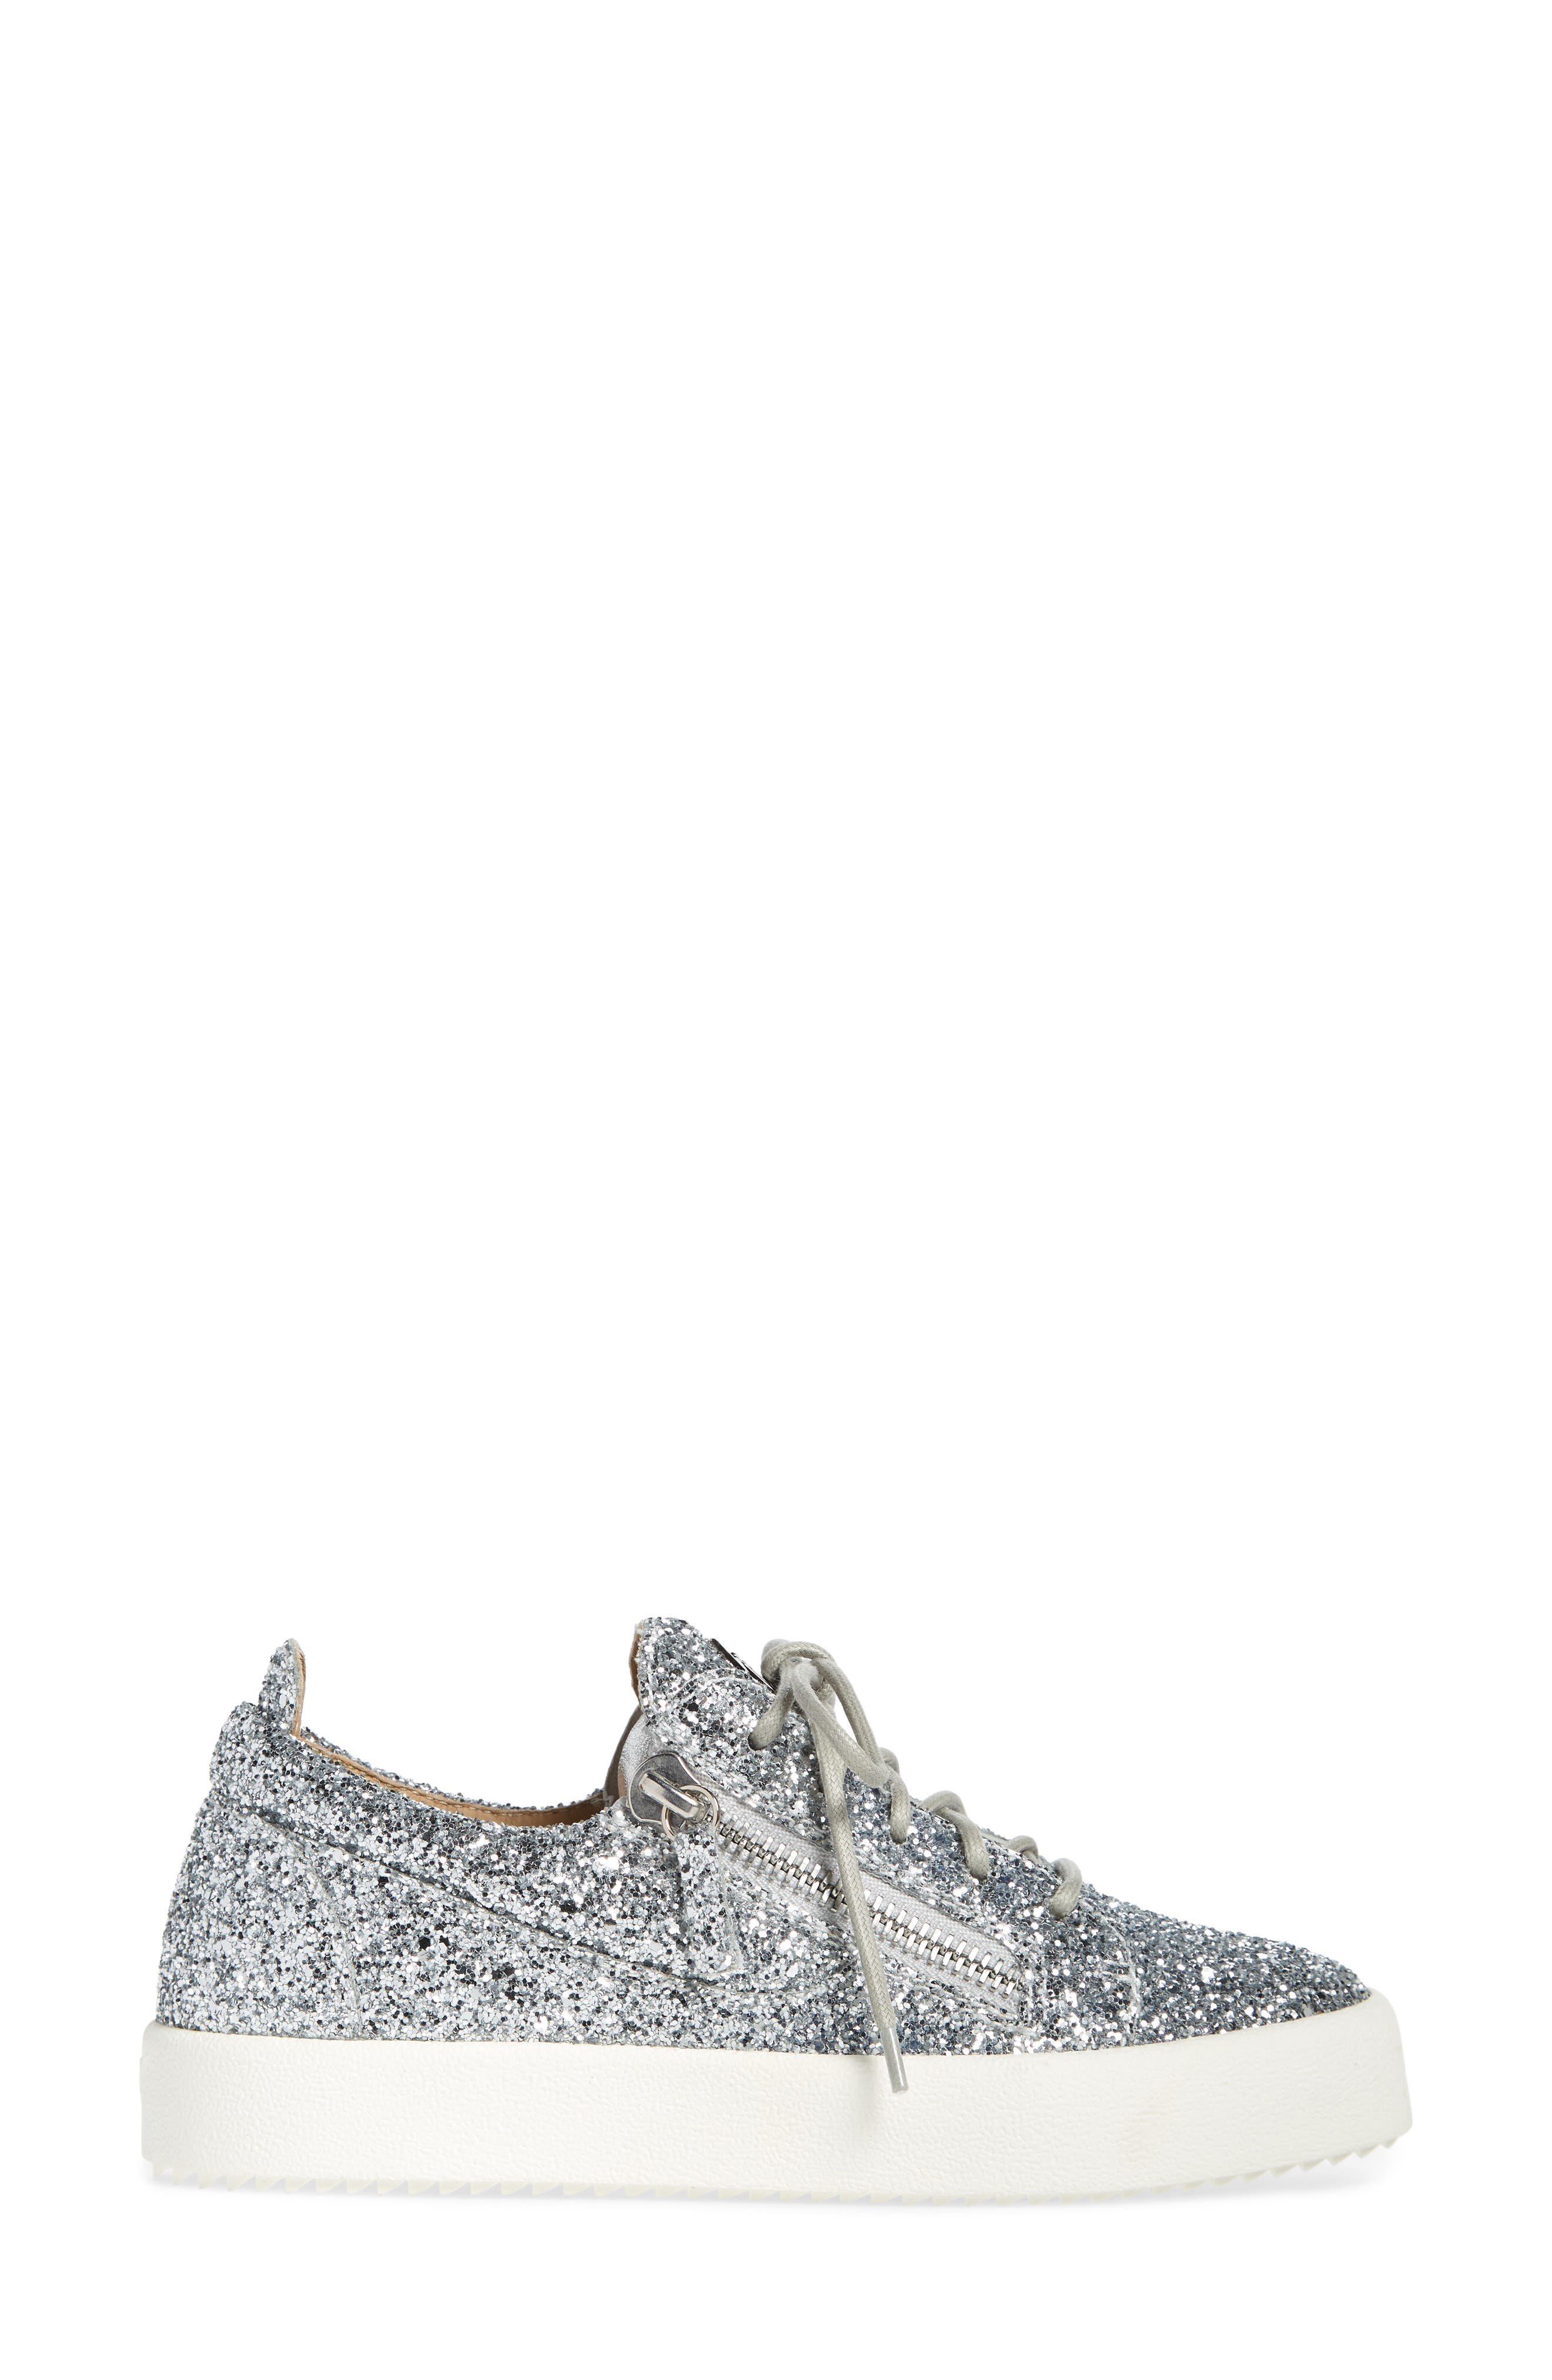 May London Low Top Sneaker,                             Alternate thumbnail 3, color,                             SILVER GLITTER